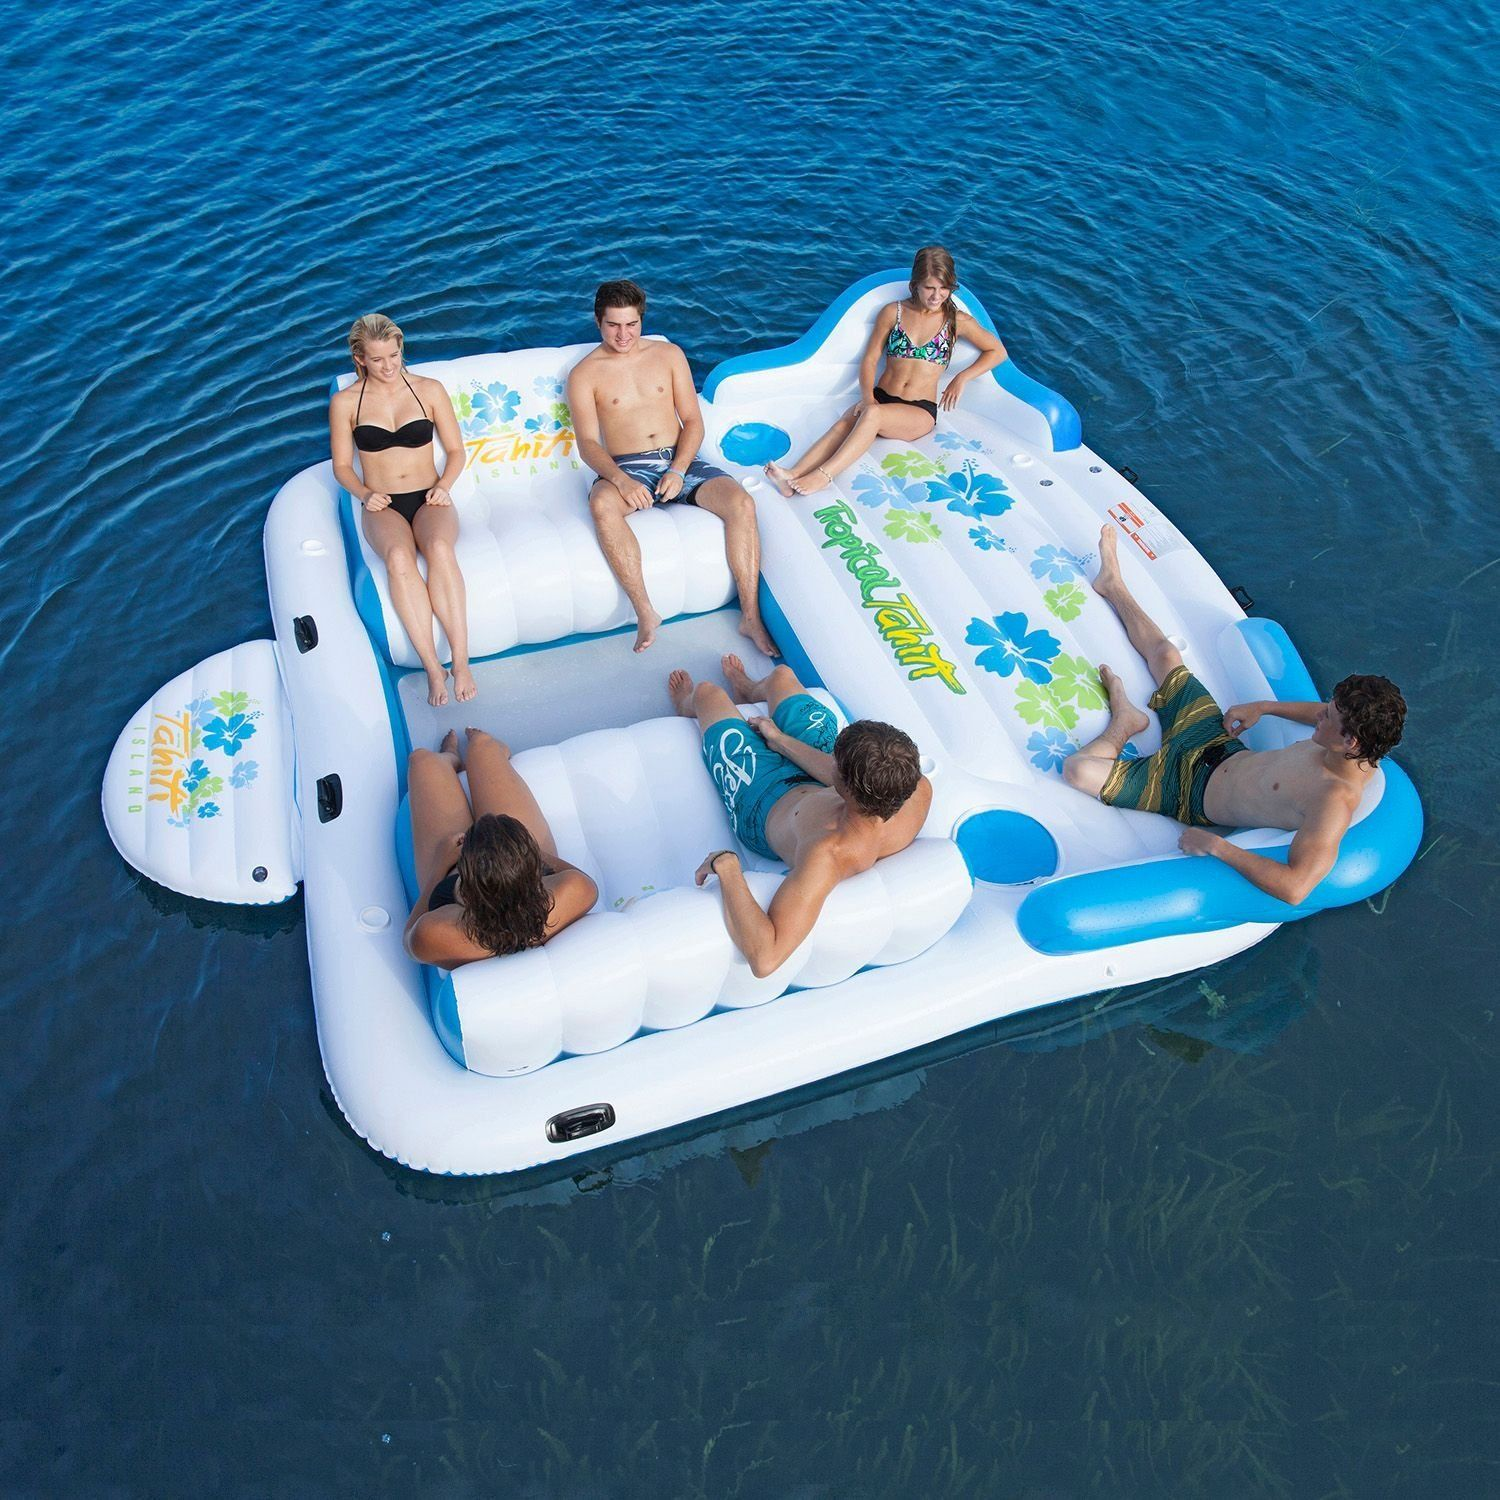 Amazon Tropical Tahiti Floating Island 6 Person 2016